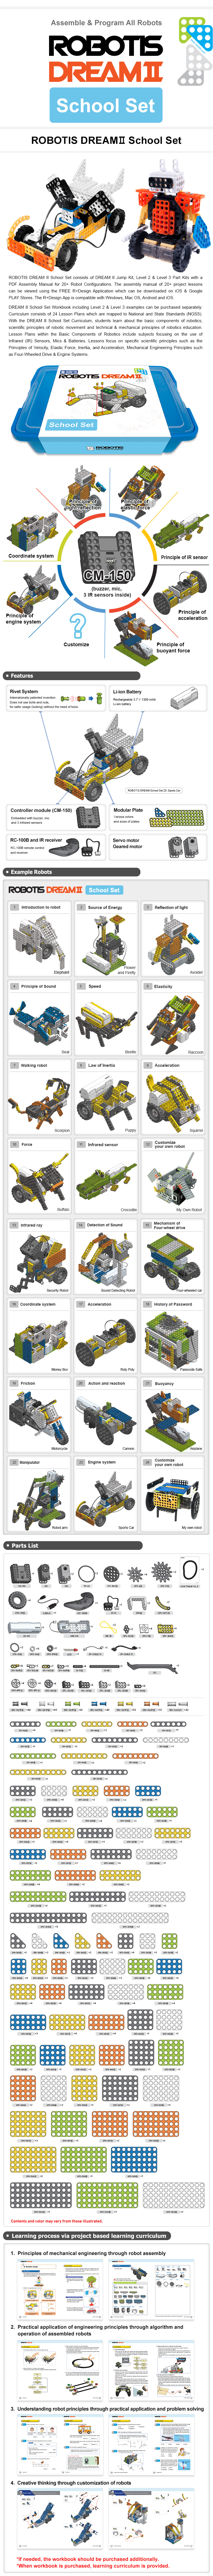 robotis-dream-school-set.jpg